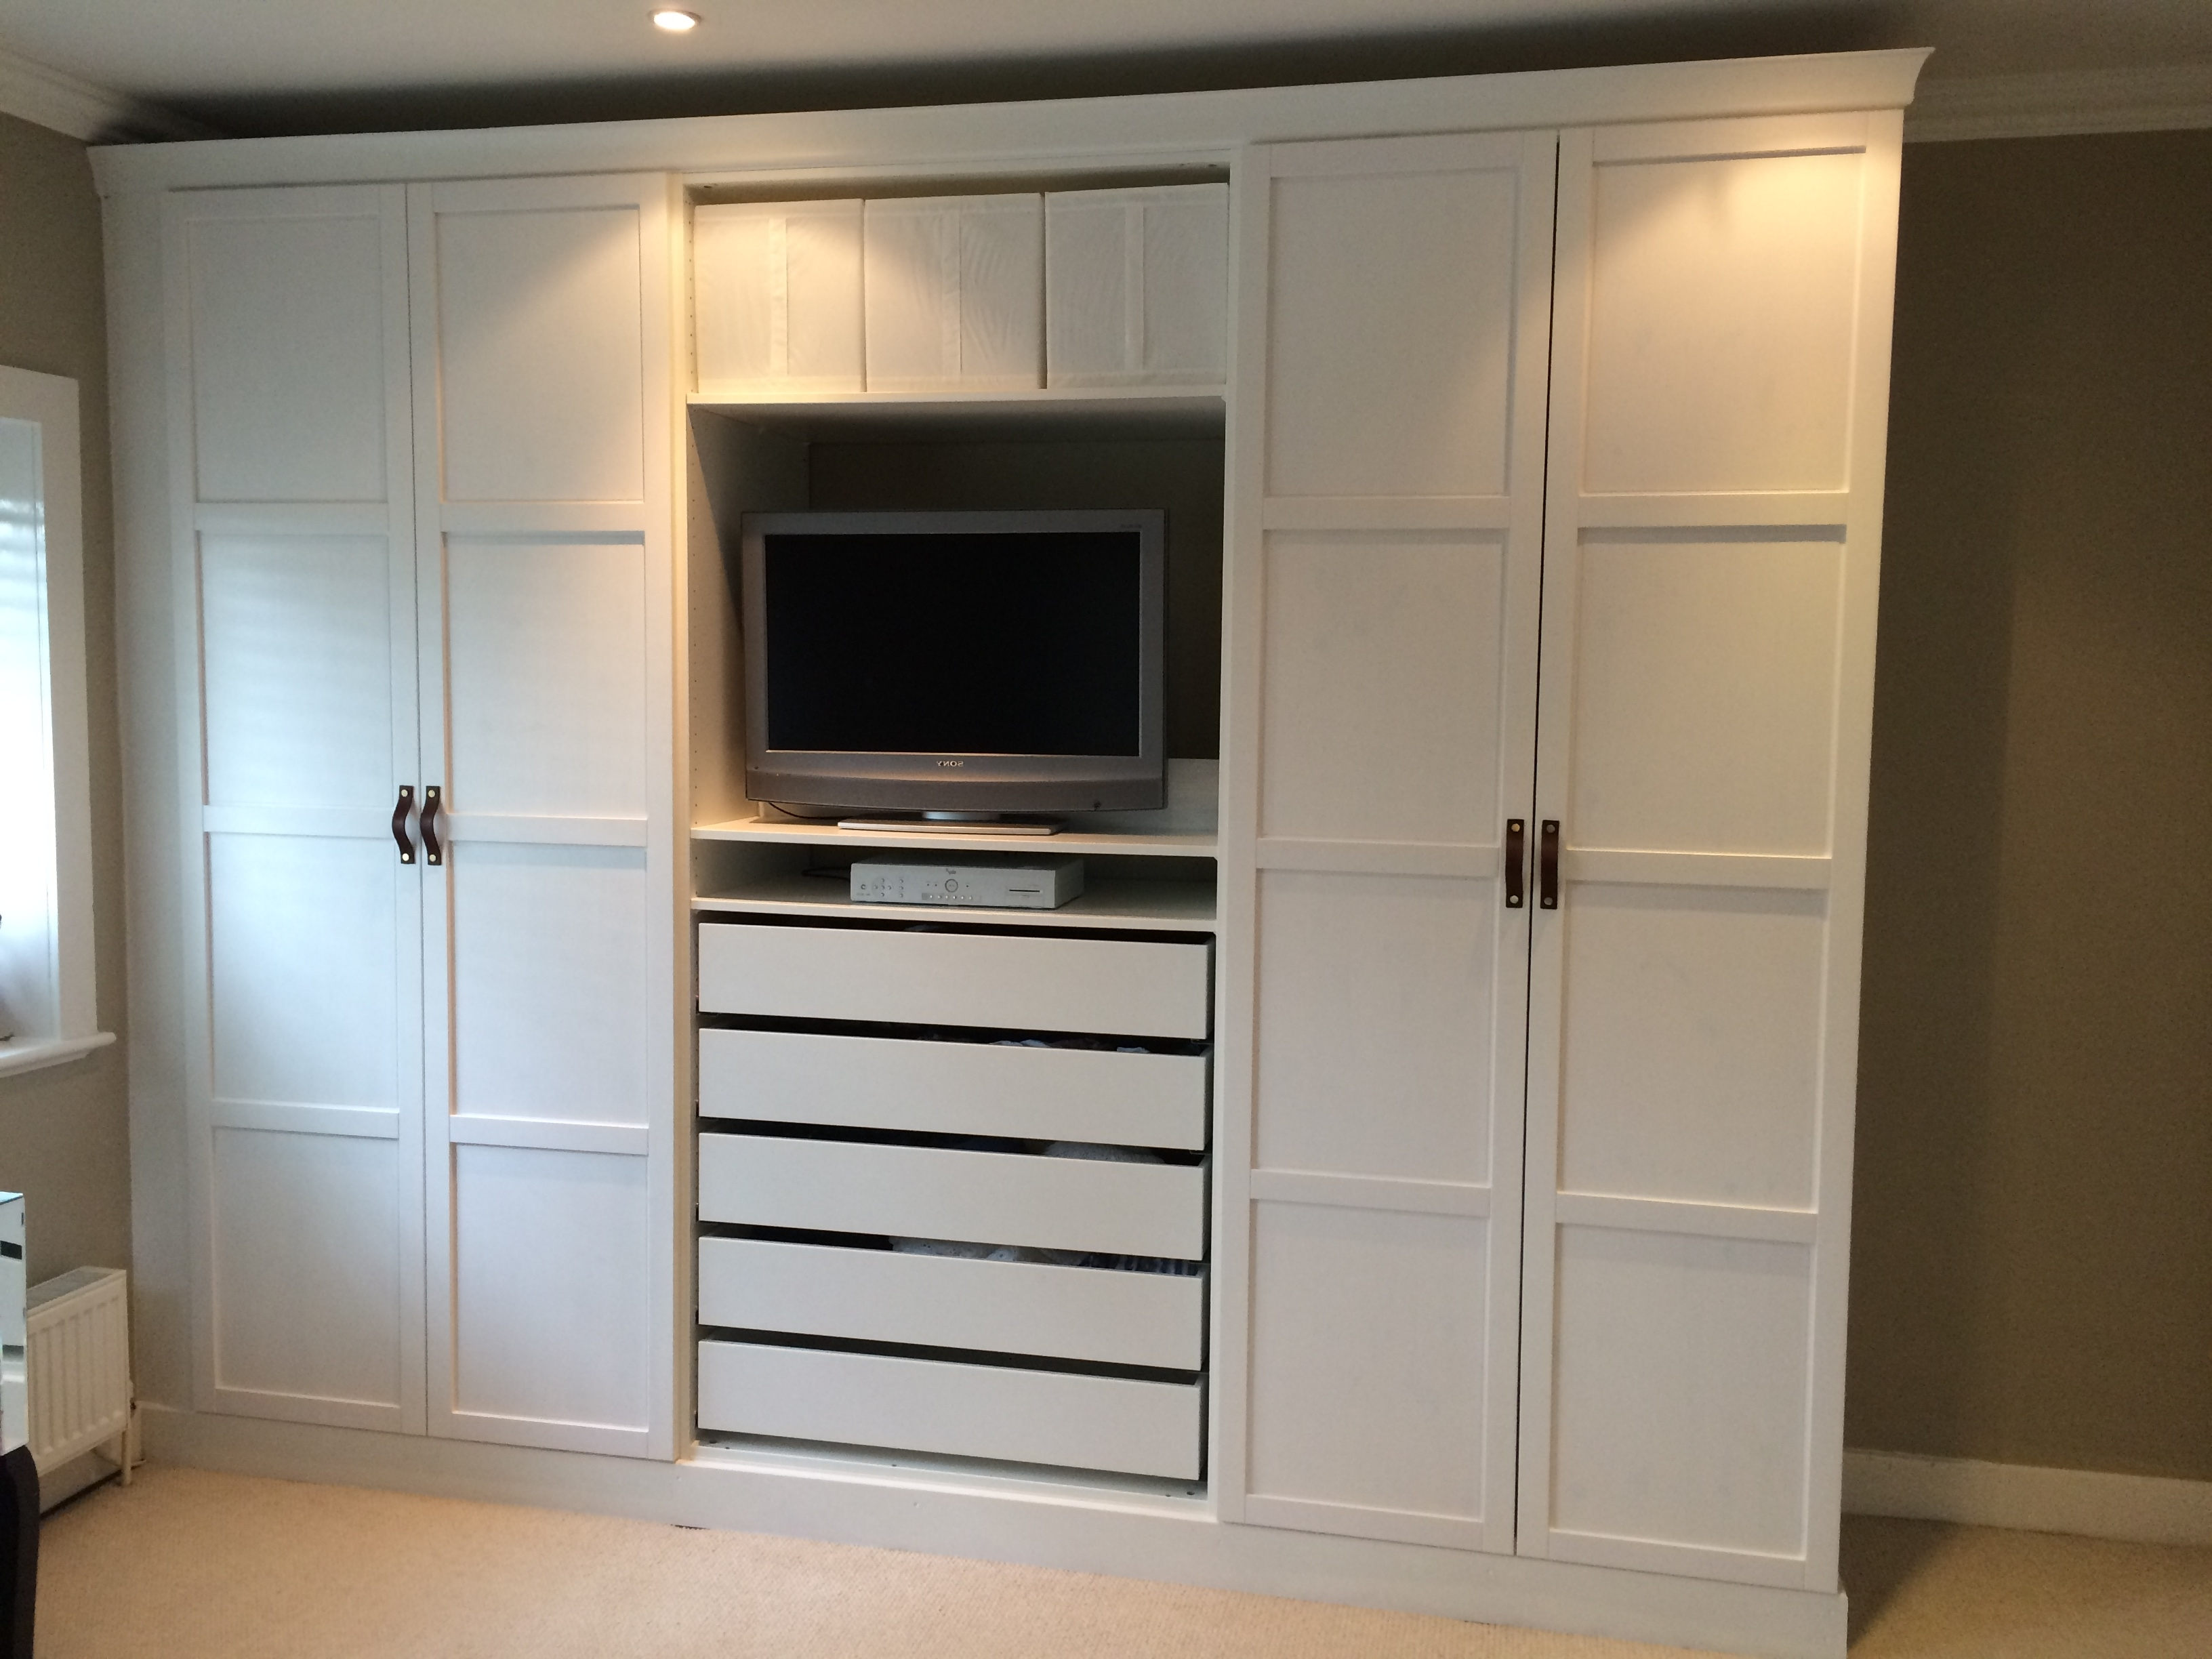 Build In Wardrobe 15 Photos Built In Wardrobes With Tv Space